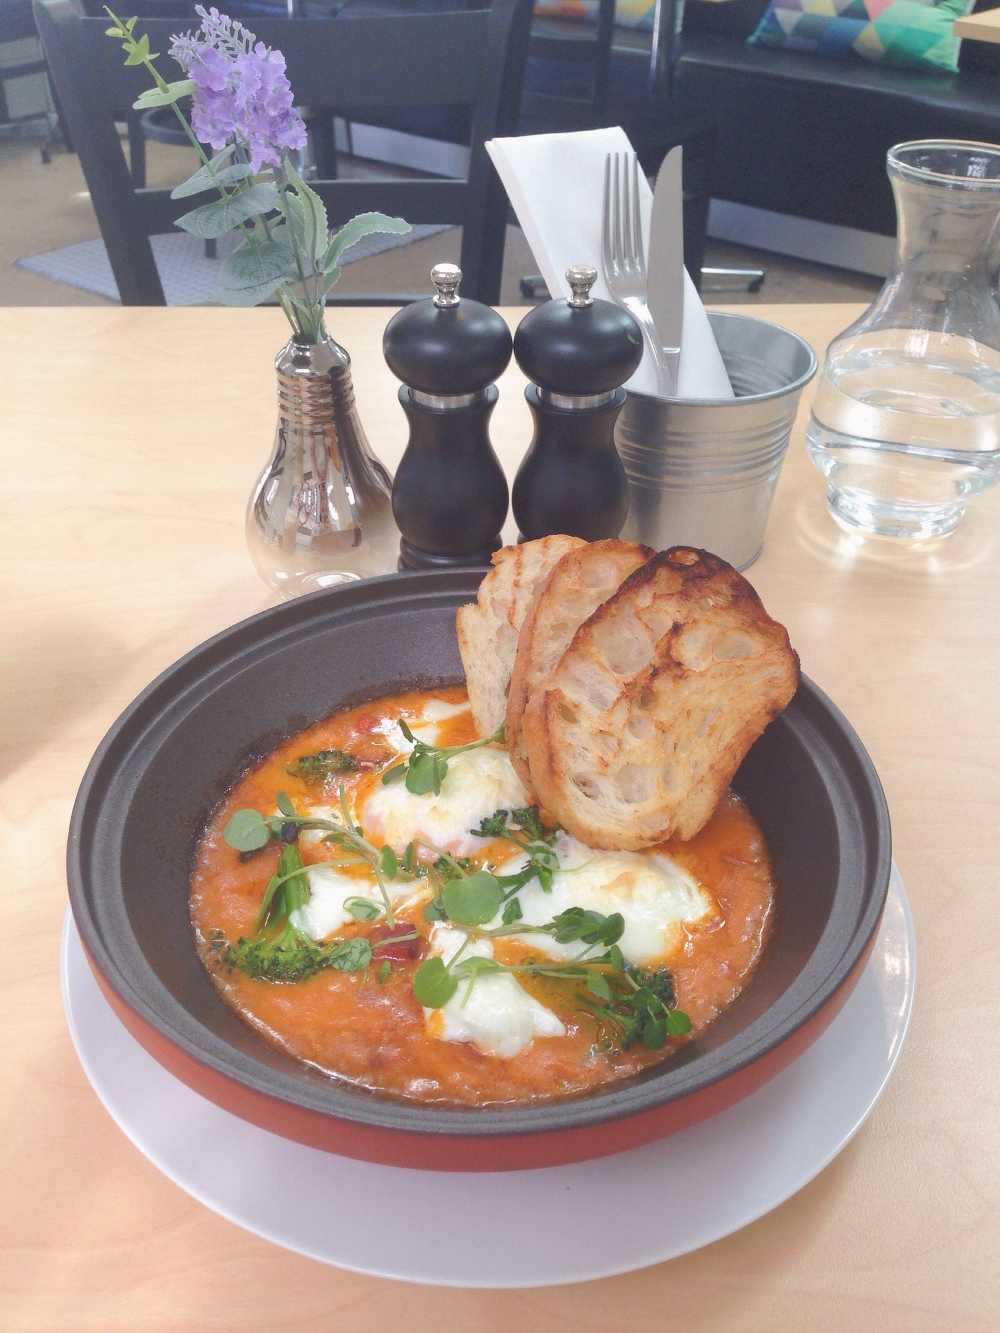 The Sugo Baked Eggs with  Chilli, Basil, Broccolini, Mozzarella and Chorizo